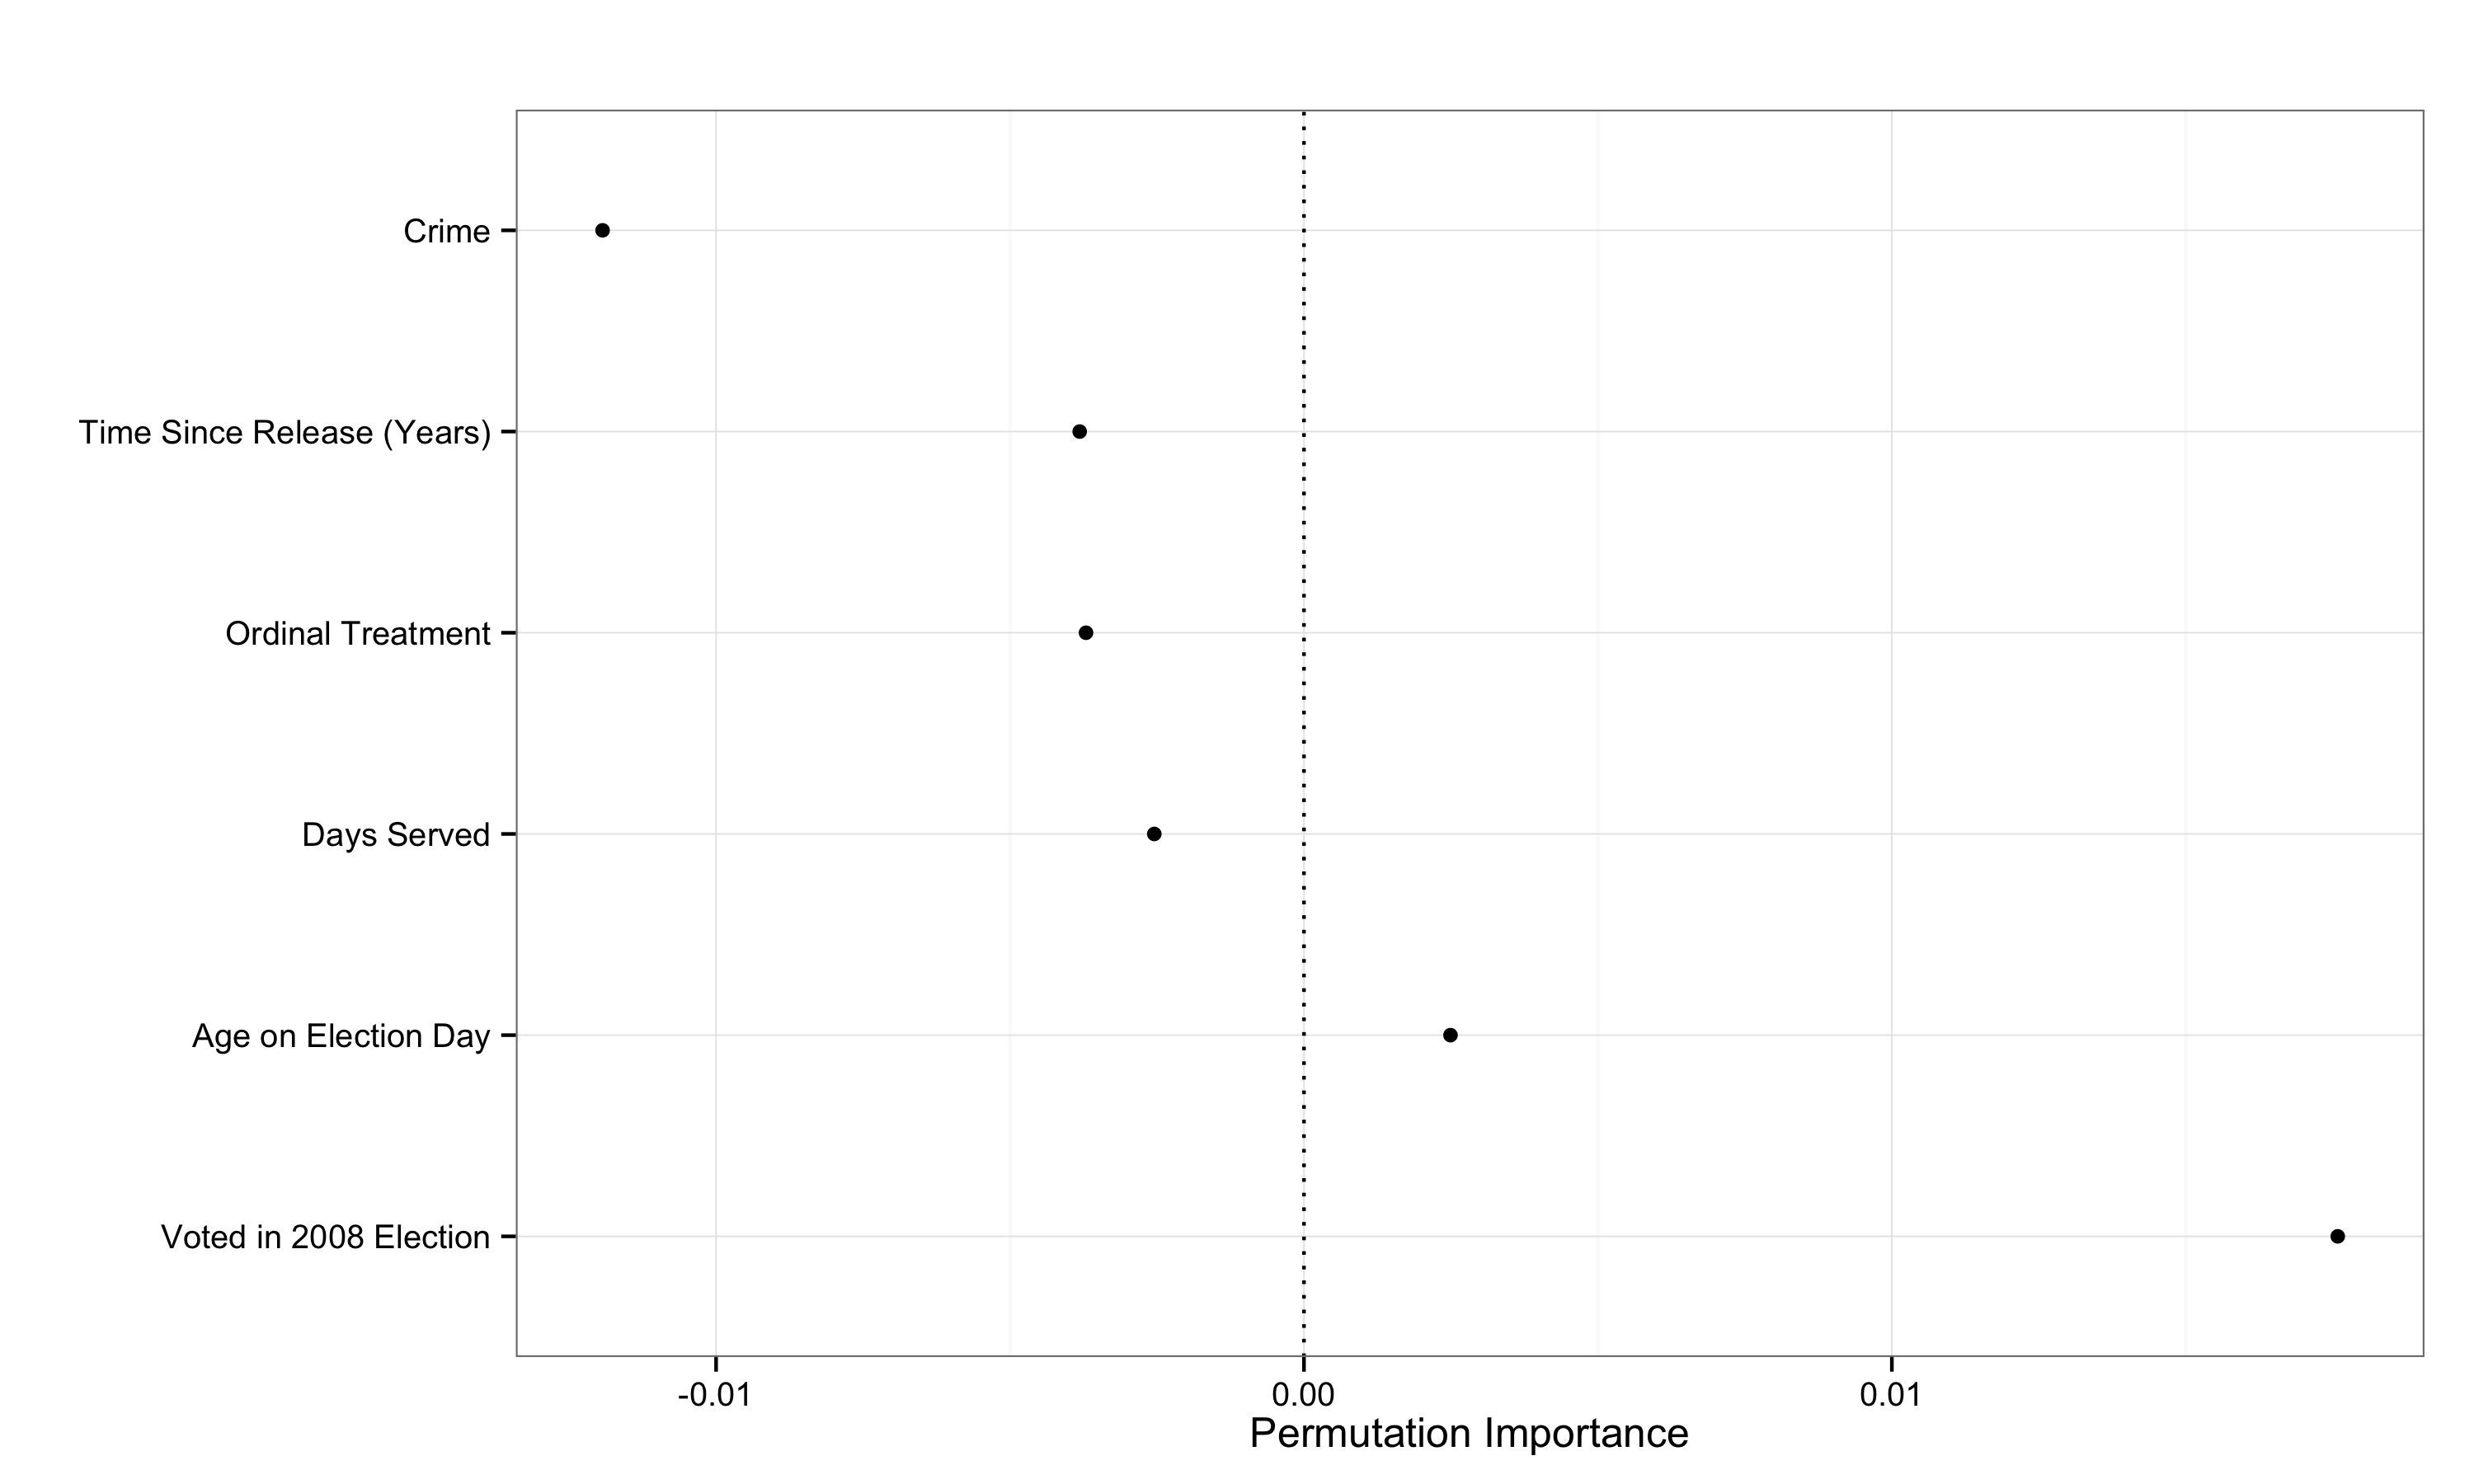 The permutation importance of the same covariates.